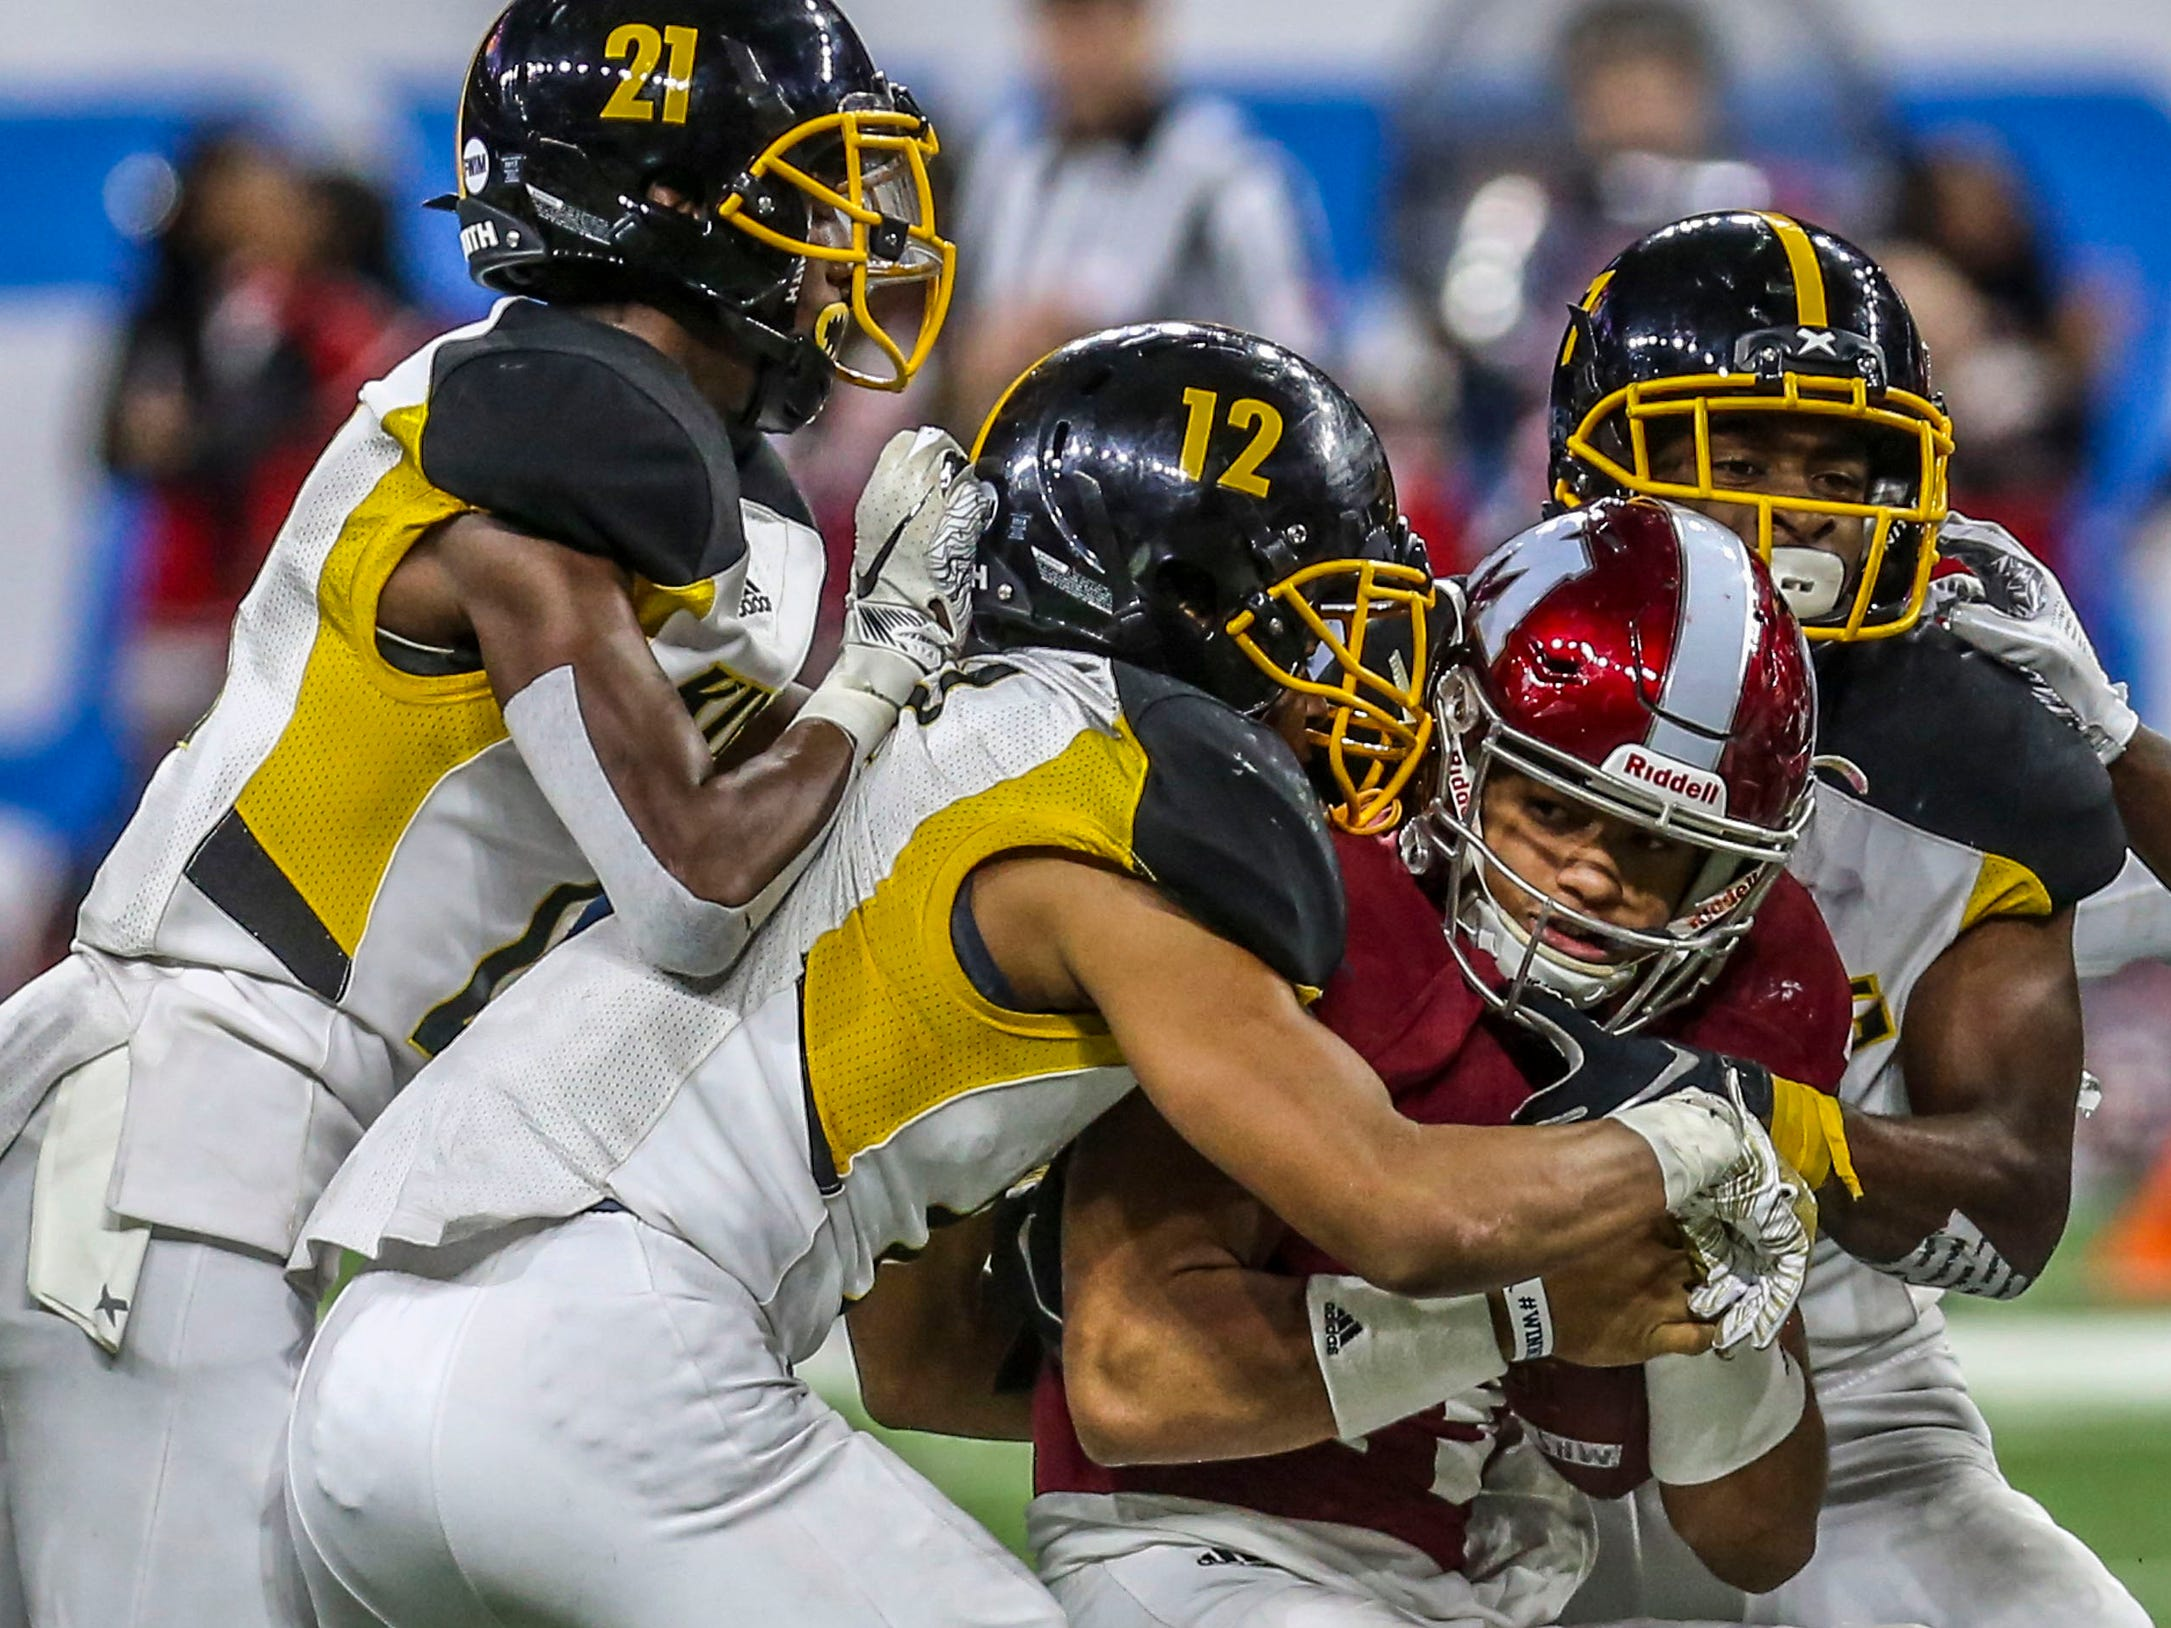 Muskegon Quarterback Cameron Martinez is tackled by Detroit Martin Luther King during the Division 3 MHSAA State Championship at Ford Field in Detroit on Saturday, Nov. 24, 2018.